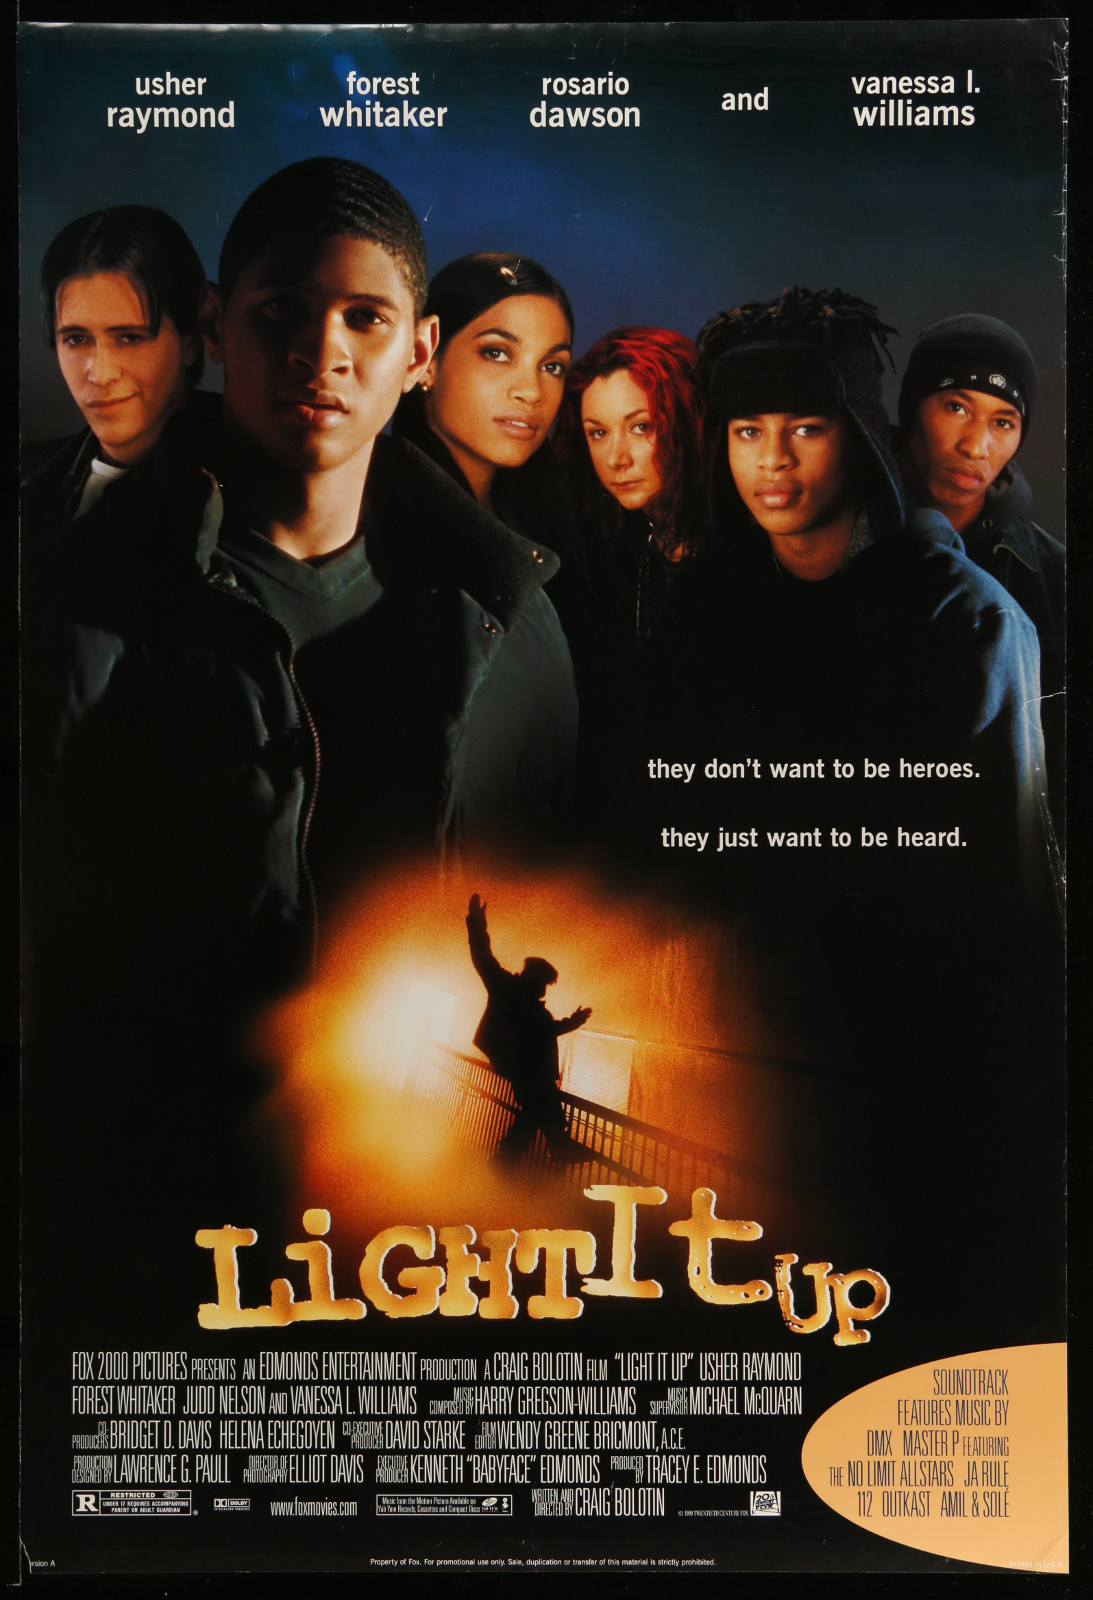 Light It Up 2A355 A Part Of A Lot 31 Unfolded Mostly Double-Sided 27X40 One-Sheets '90S Cool Movie Images!